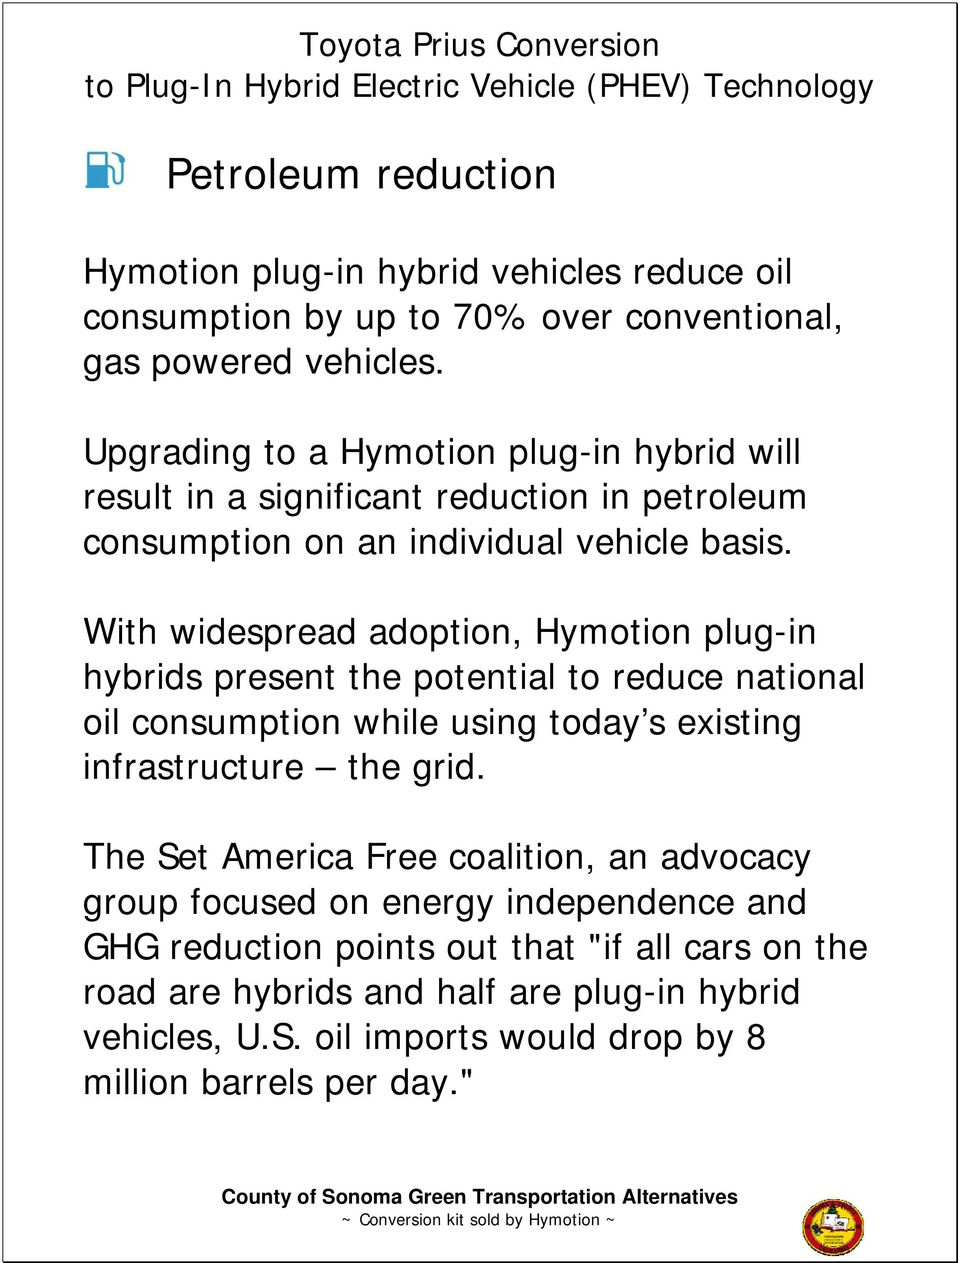 With widespread adoption, Hymotion plug-in hybrids present the potential to reduce national oil consumption while using today s existing infrastructure the grid.